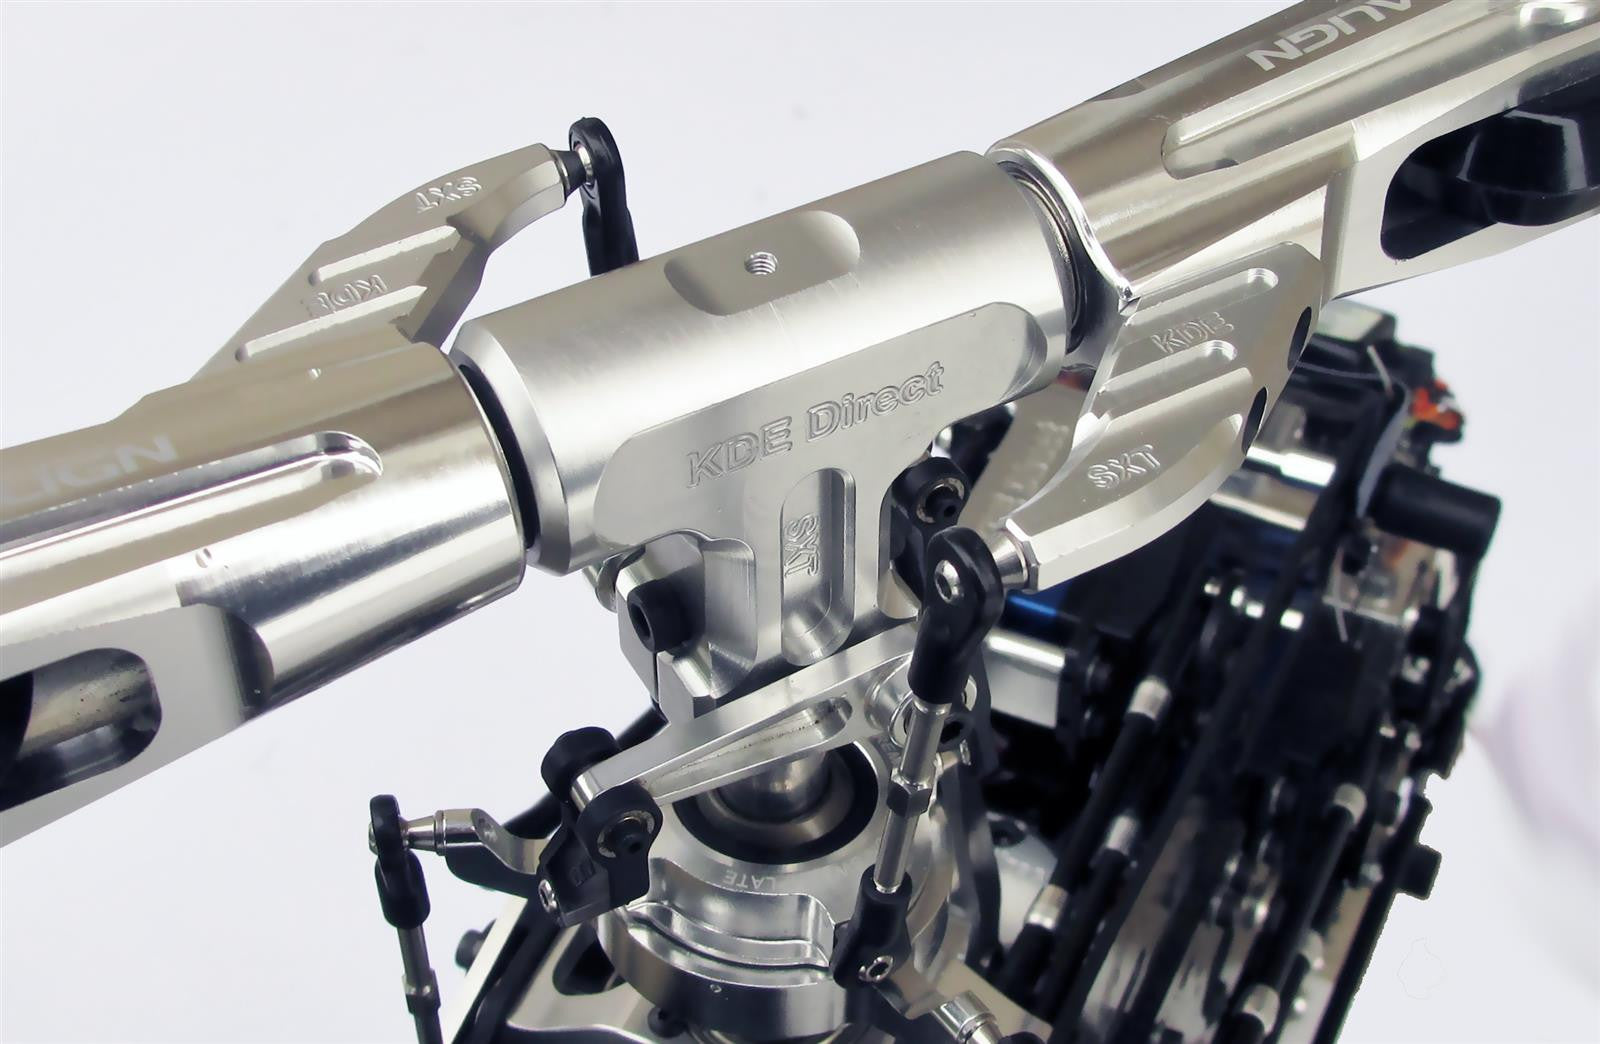 AT700-SXTS SXT Main Rotor Head System for ALIGN T-Rex 700/800 Series  Helicopters